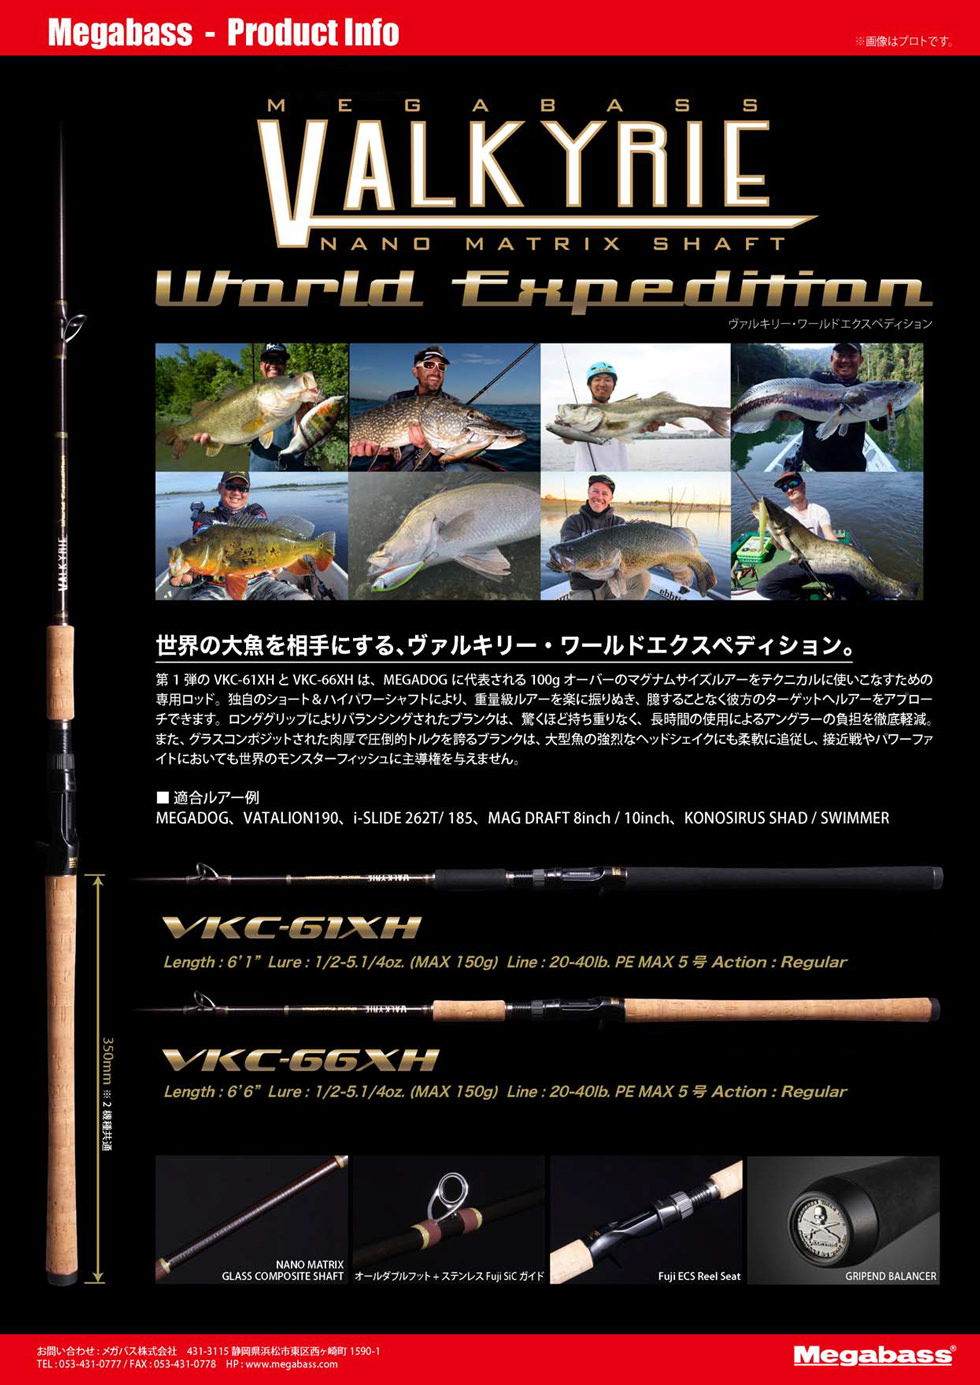 VALKYRIE WORLD EXPEDITION